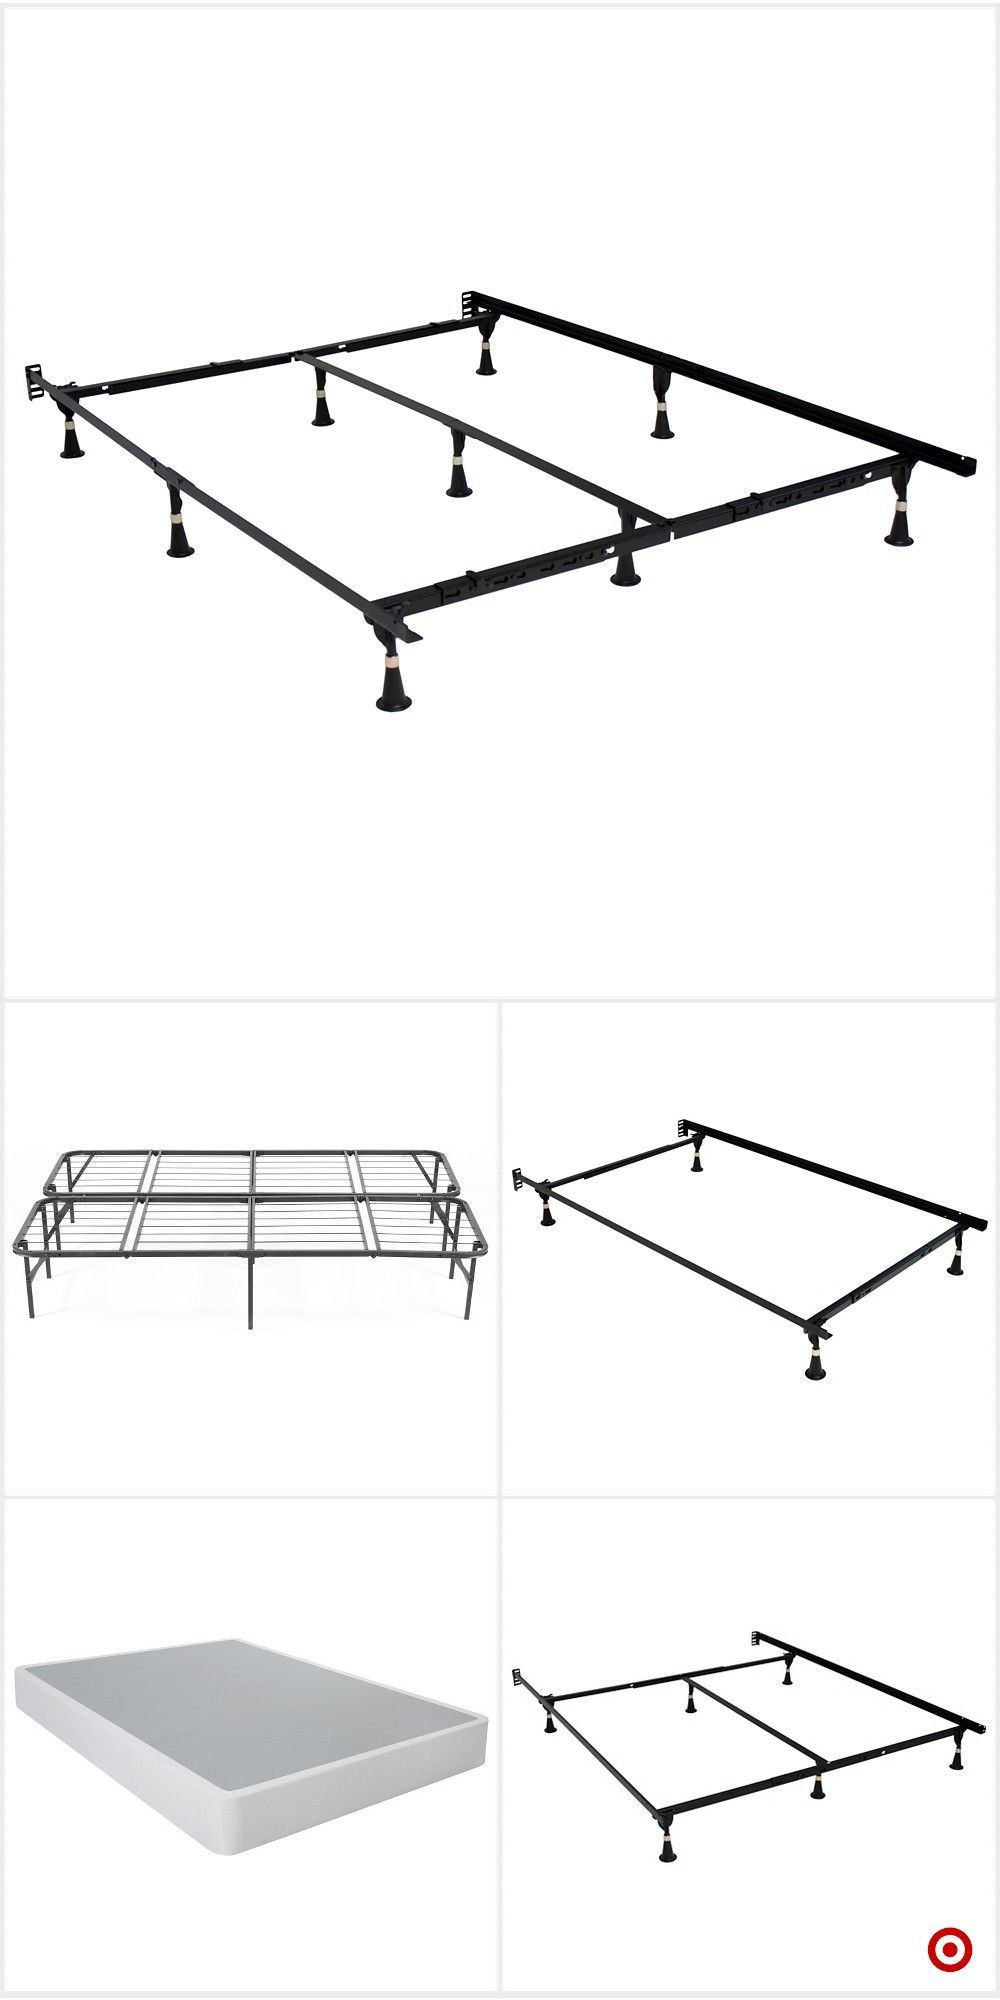 Luggage Rack Target Beauteous Shop Target For Bed Frame You Will Love At Great Low Pricesfree Design Ideas